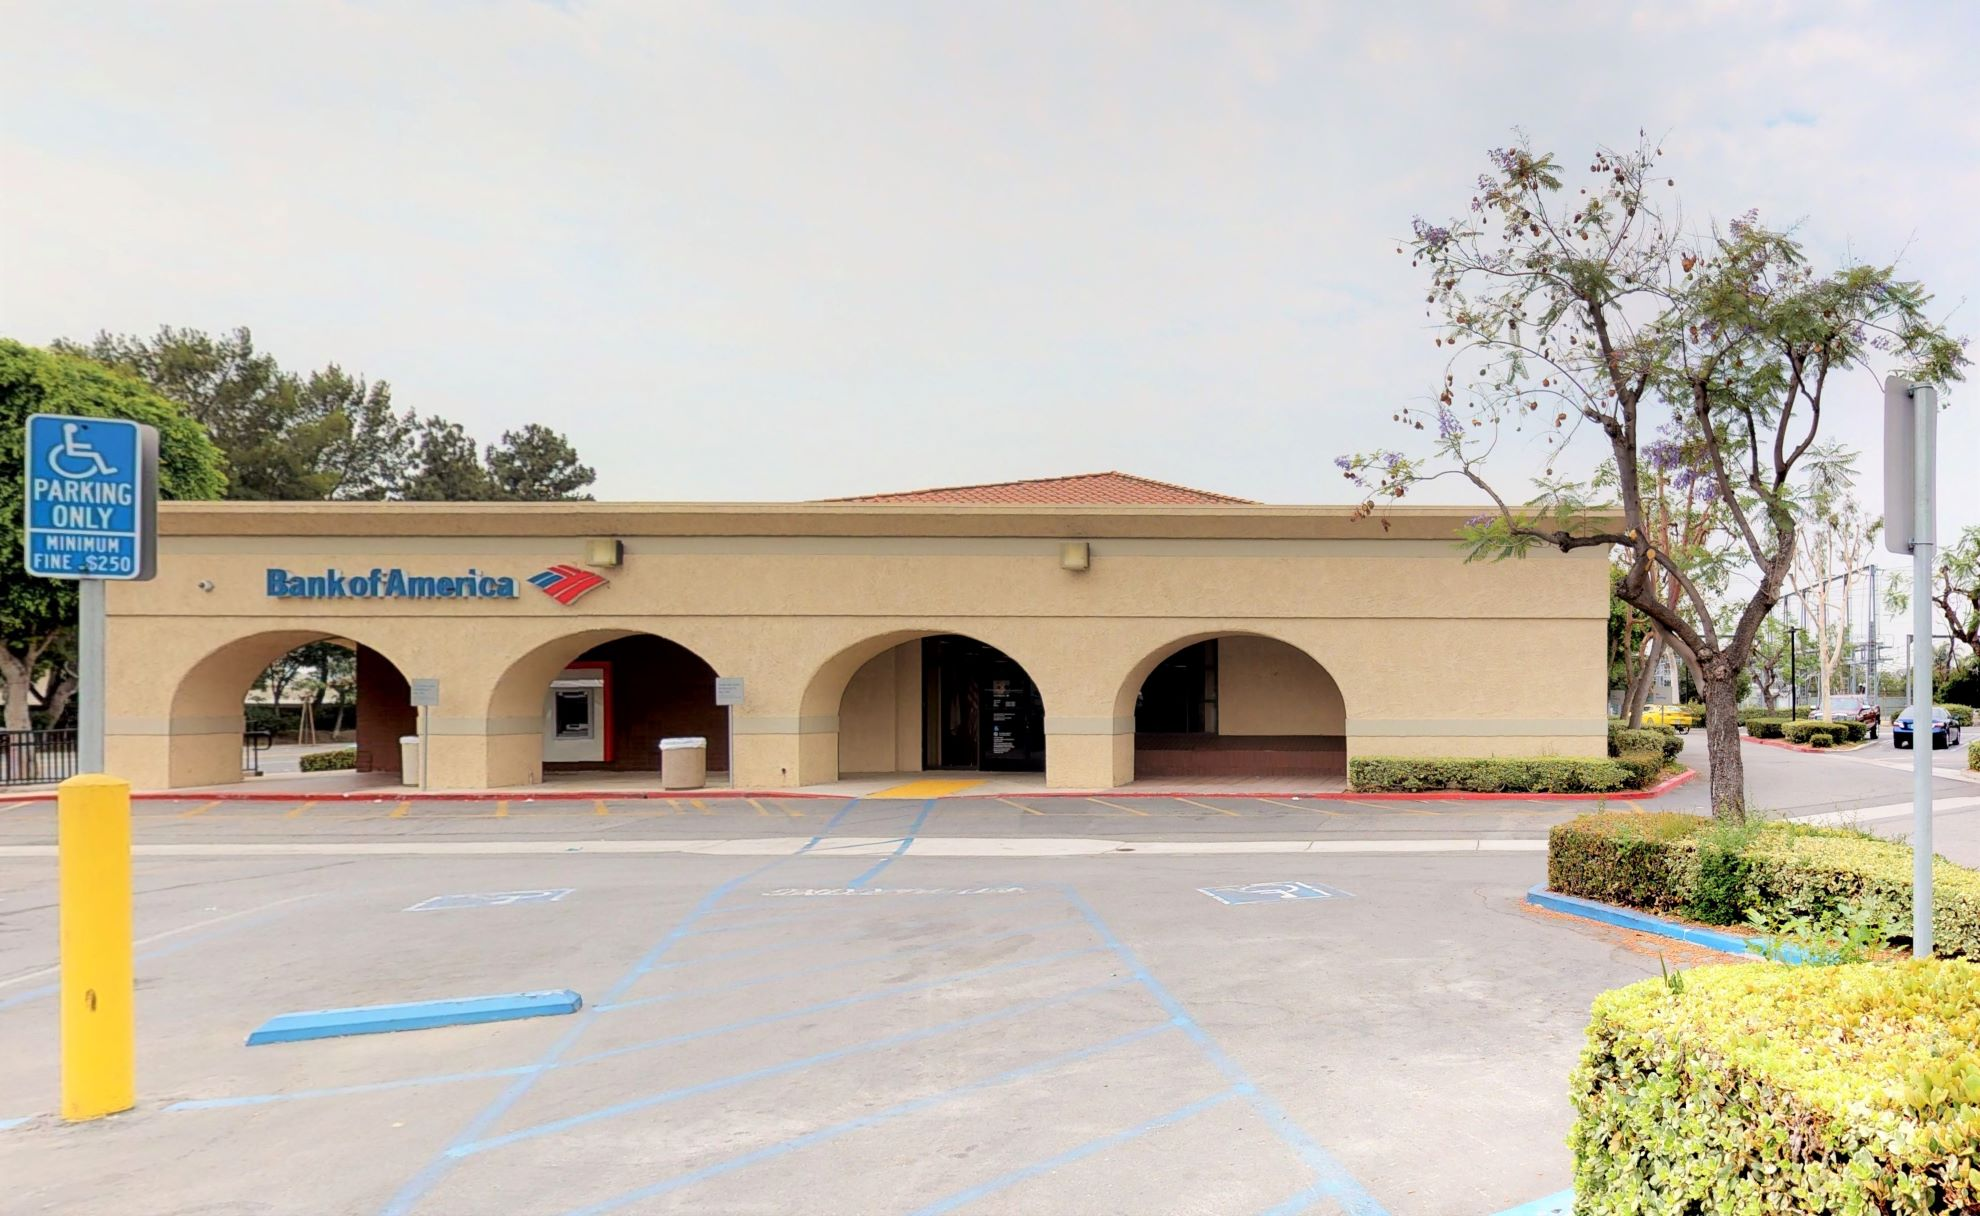 Bank of America financial center with walk-up ATM | 4825 E Chapman Ave, Orange, CA 92869